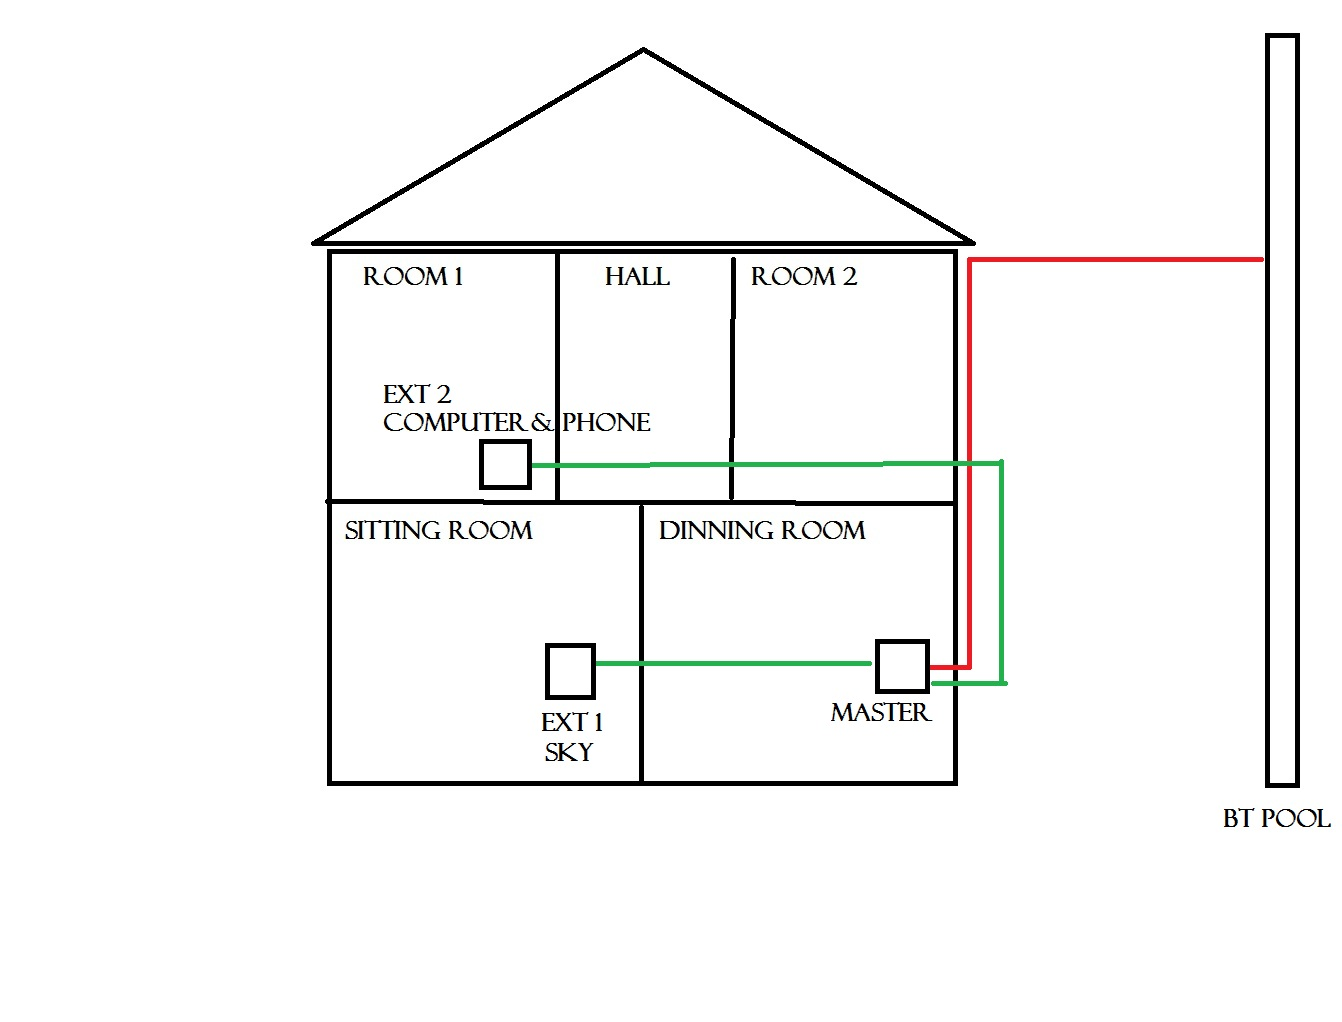 hight resolution of bt infinity 2 wiring diagram wiring librarybt infinity 2 wiring diagram